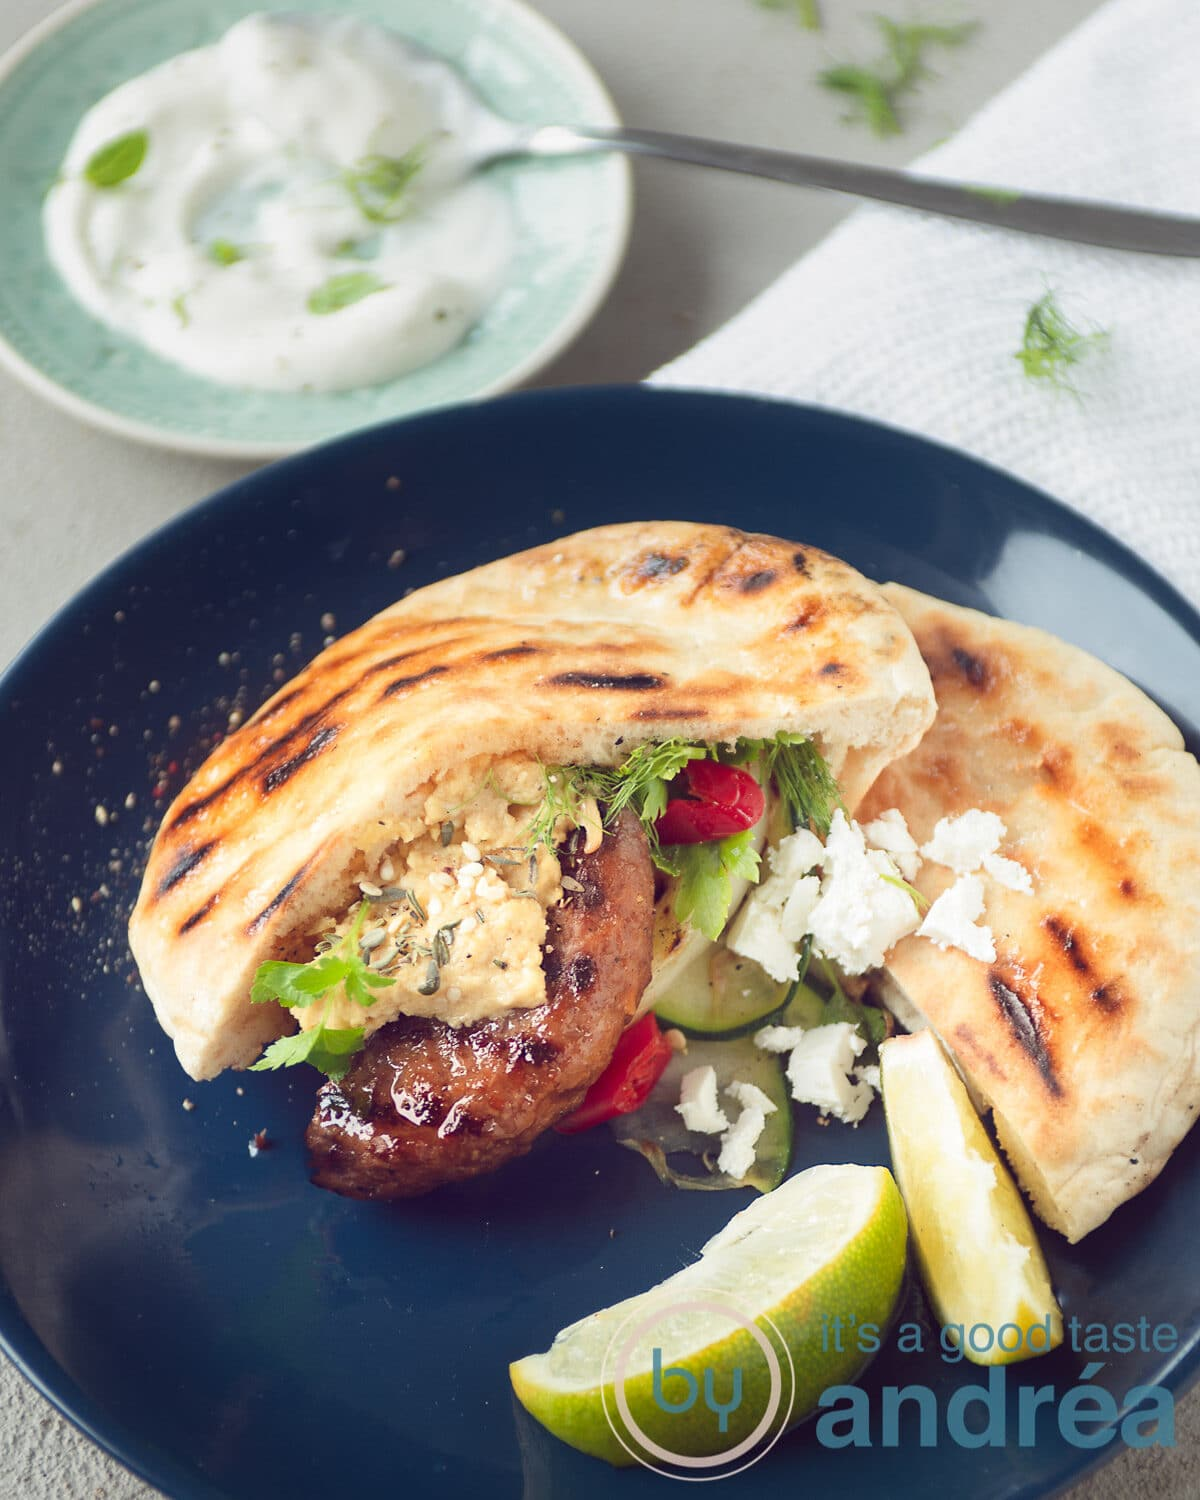 A blue plate with grilled vegetables, hamburger and feta cheese.